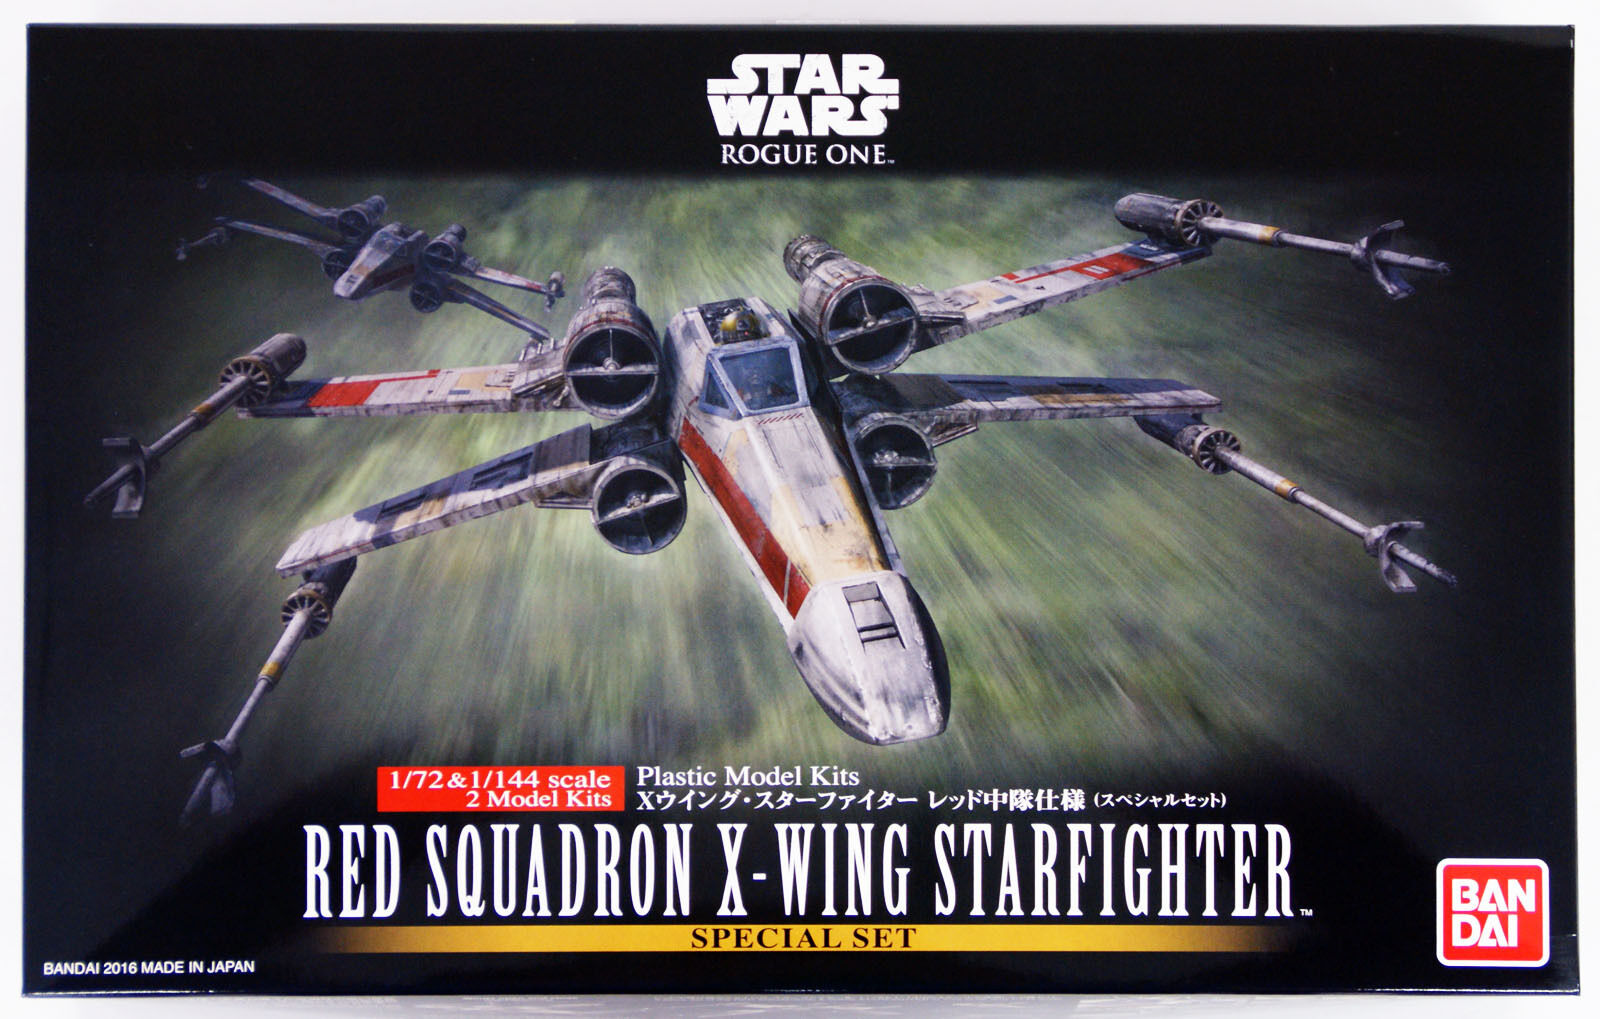 Bandai Star Wars Red Squadron X-Wing Star Fighter 1/72 & 1/144 2 Models 105220